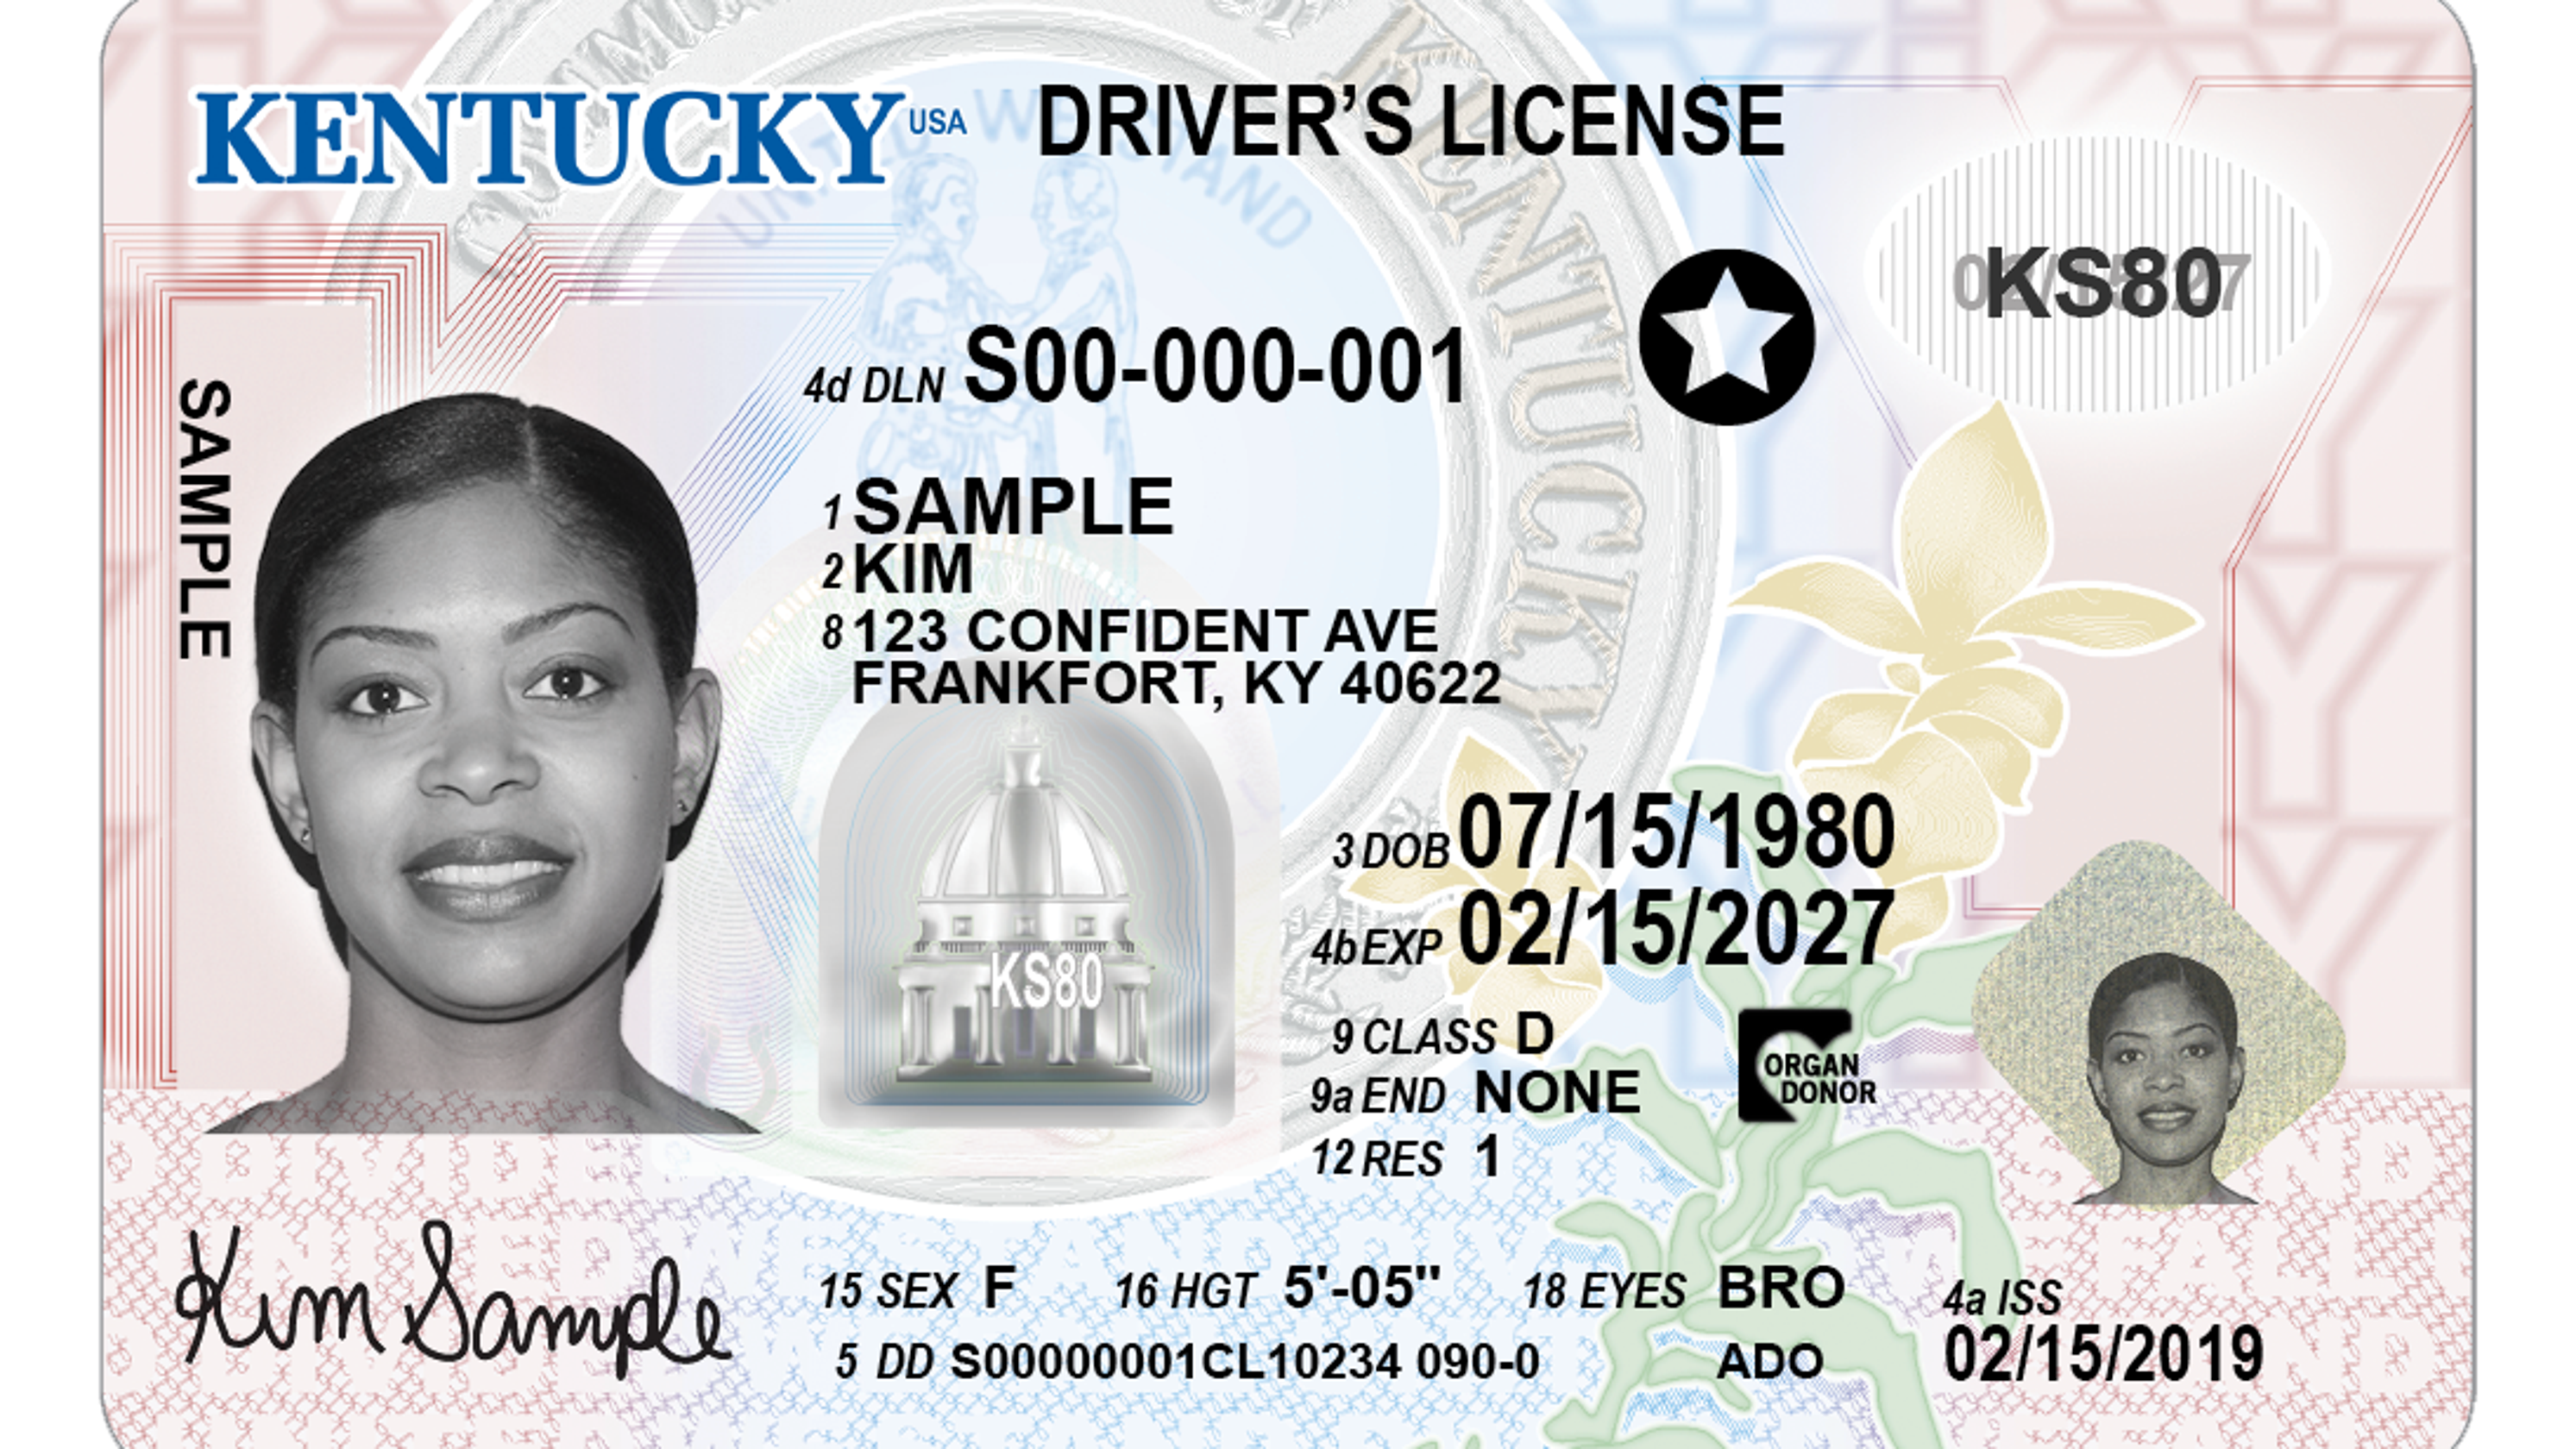 Driver's New Id Design For Travel Reveals License Kentucky